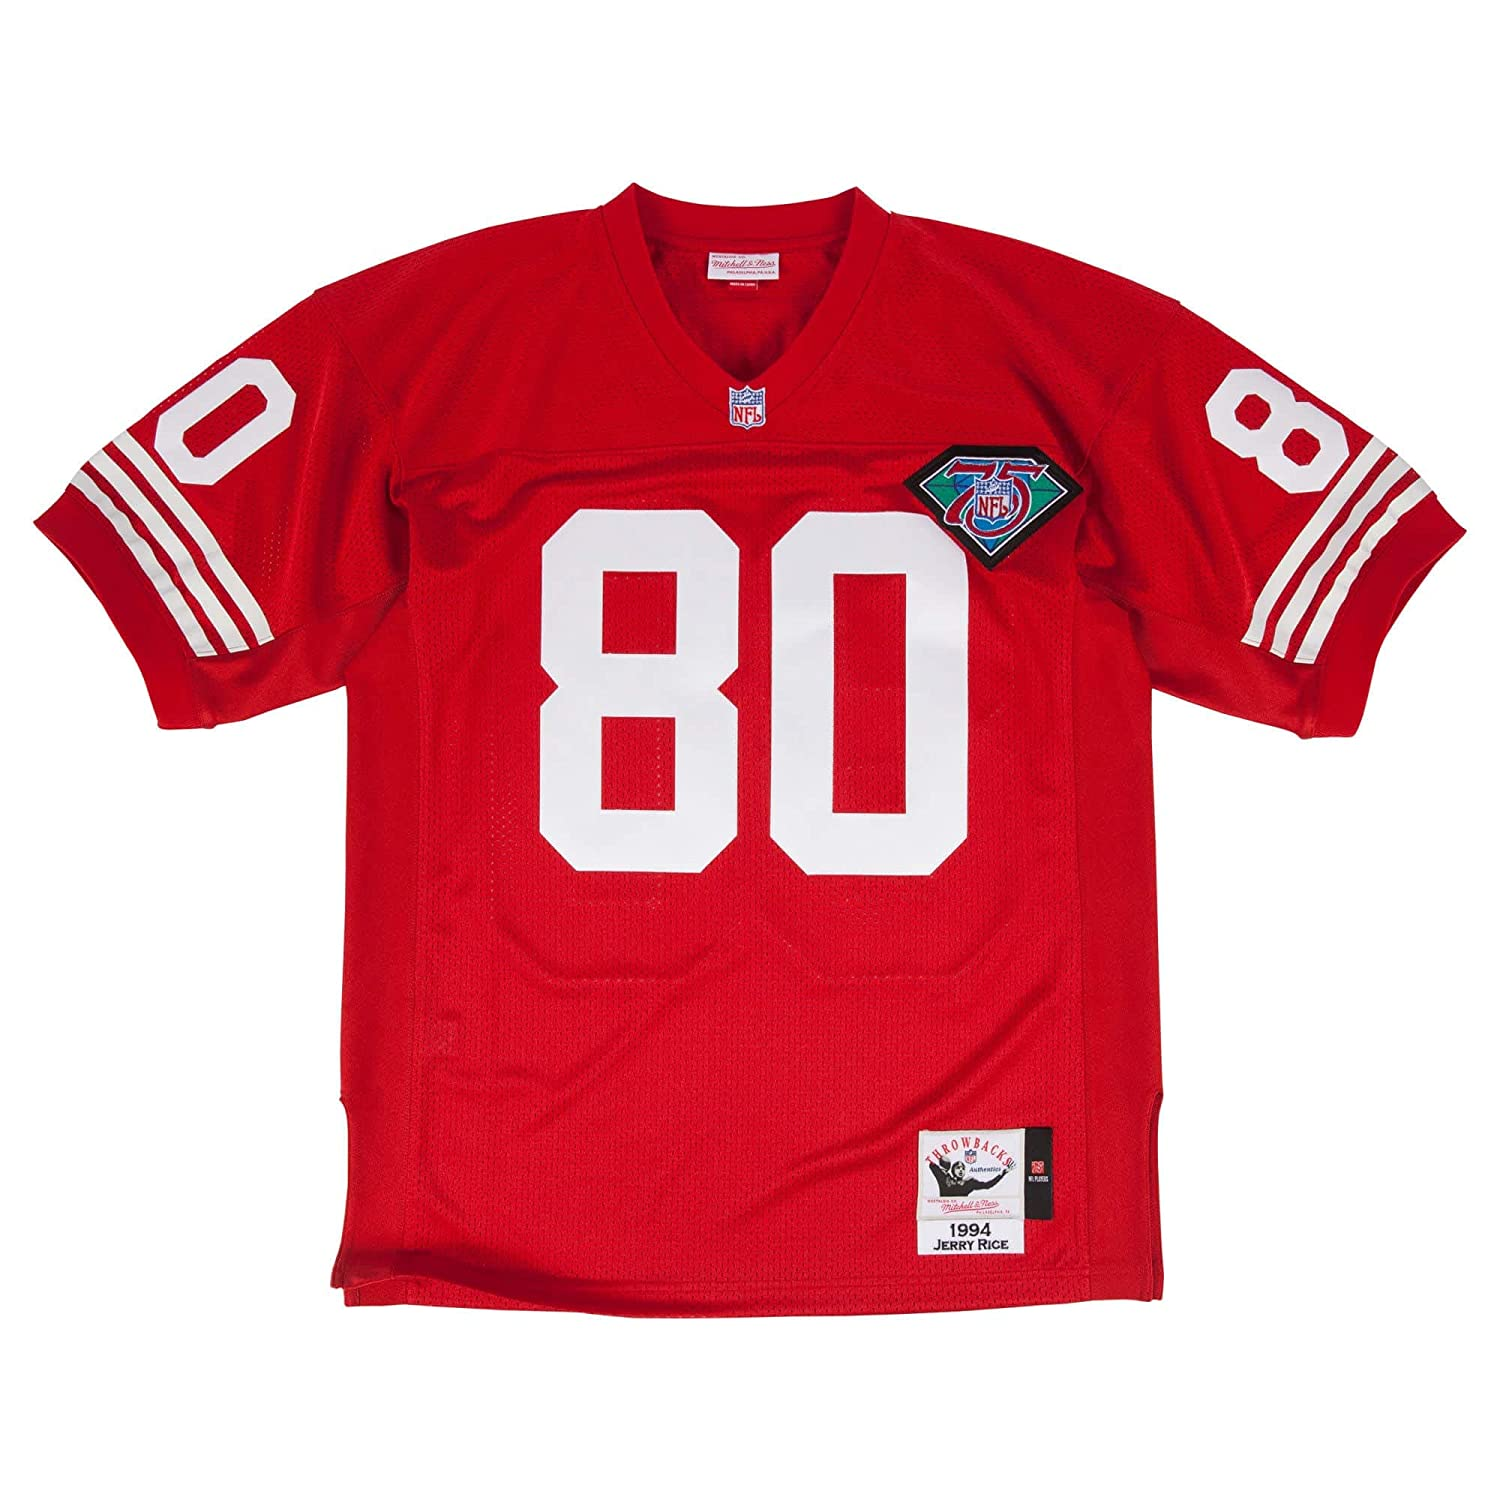 brand new 60e4e dedf9 Mitchell & Ness Jerry Rice 1994 Authentic Jersey #80 San Francisco 49ers Red